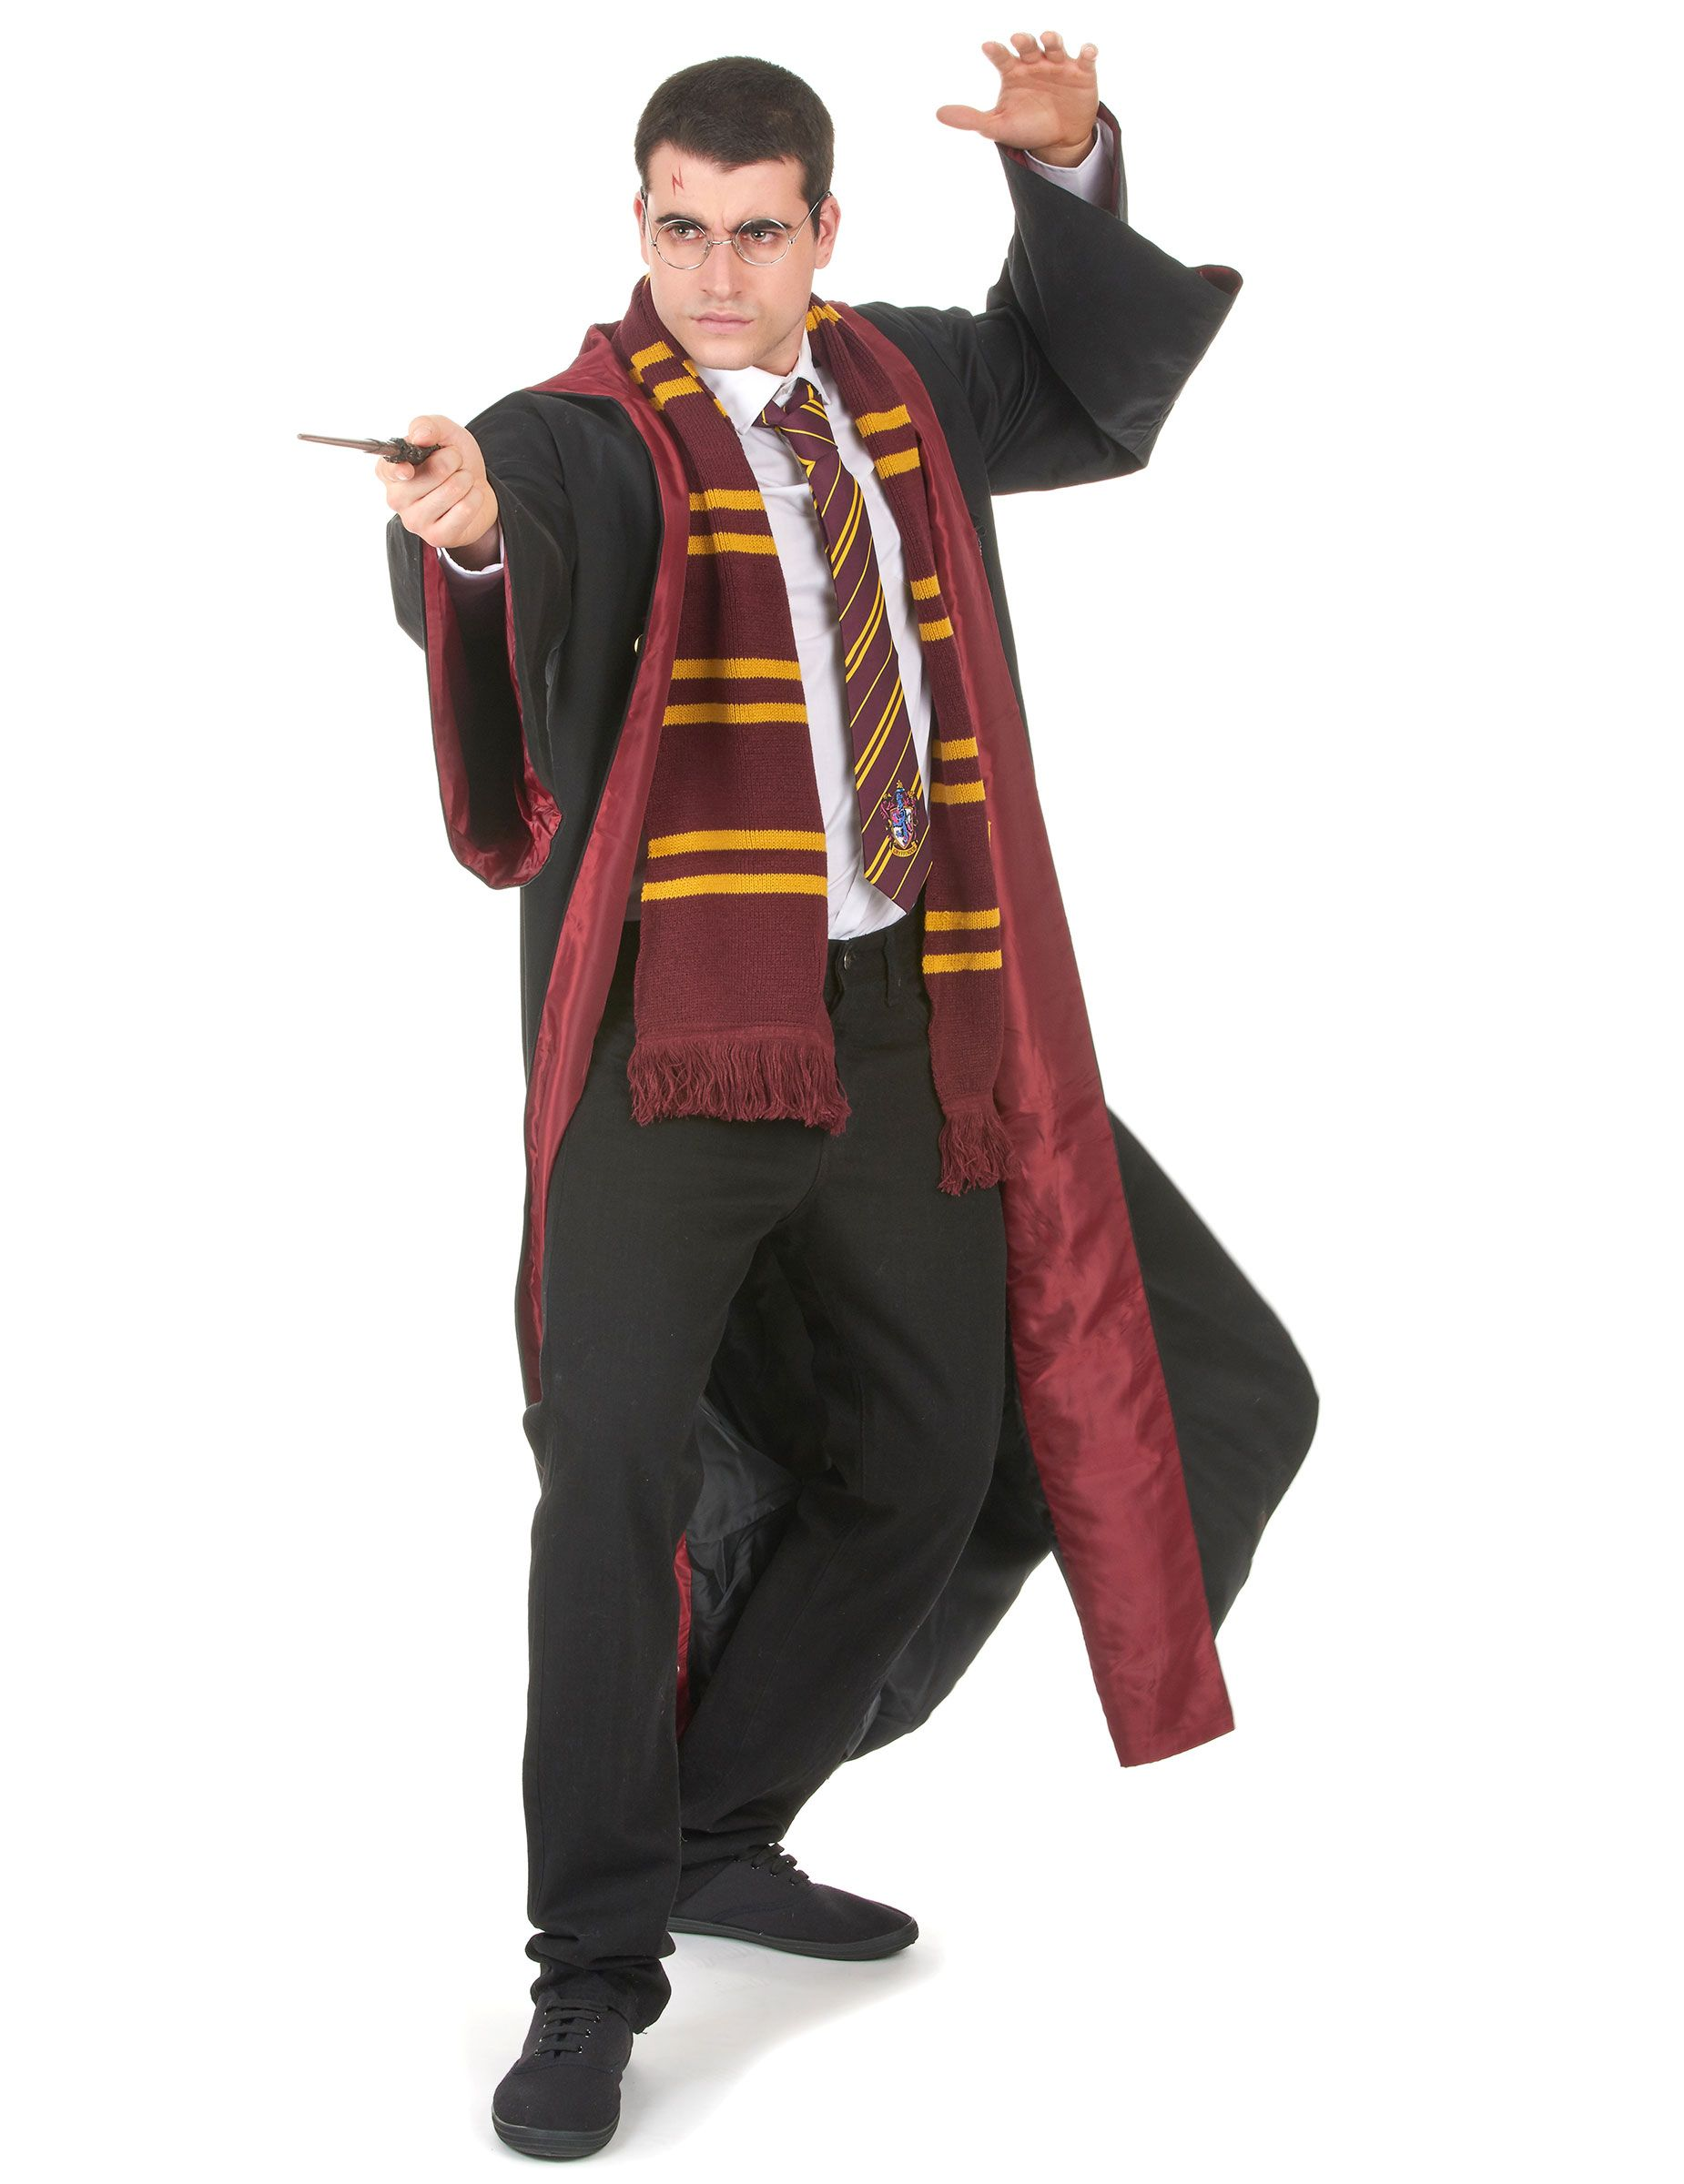 e2350b6ab6 Harry Potter™ Gryffindor wizard gown | Halloween costumes | Harry ...